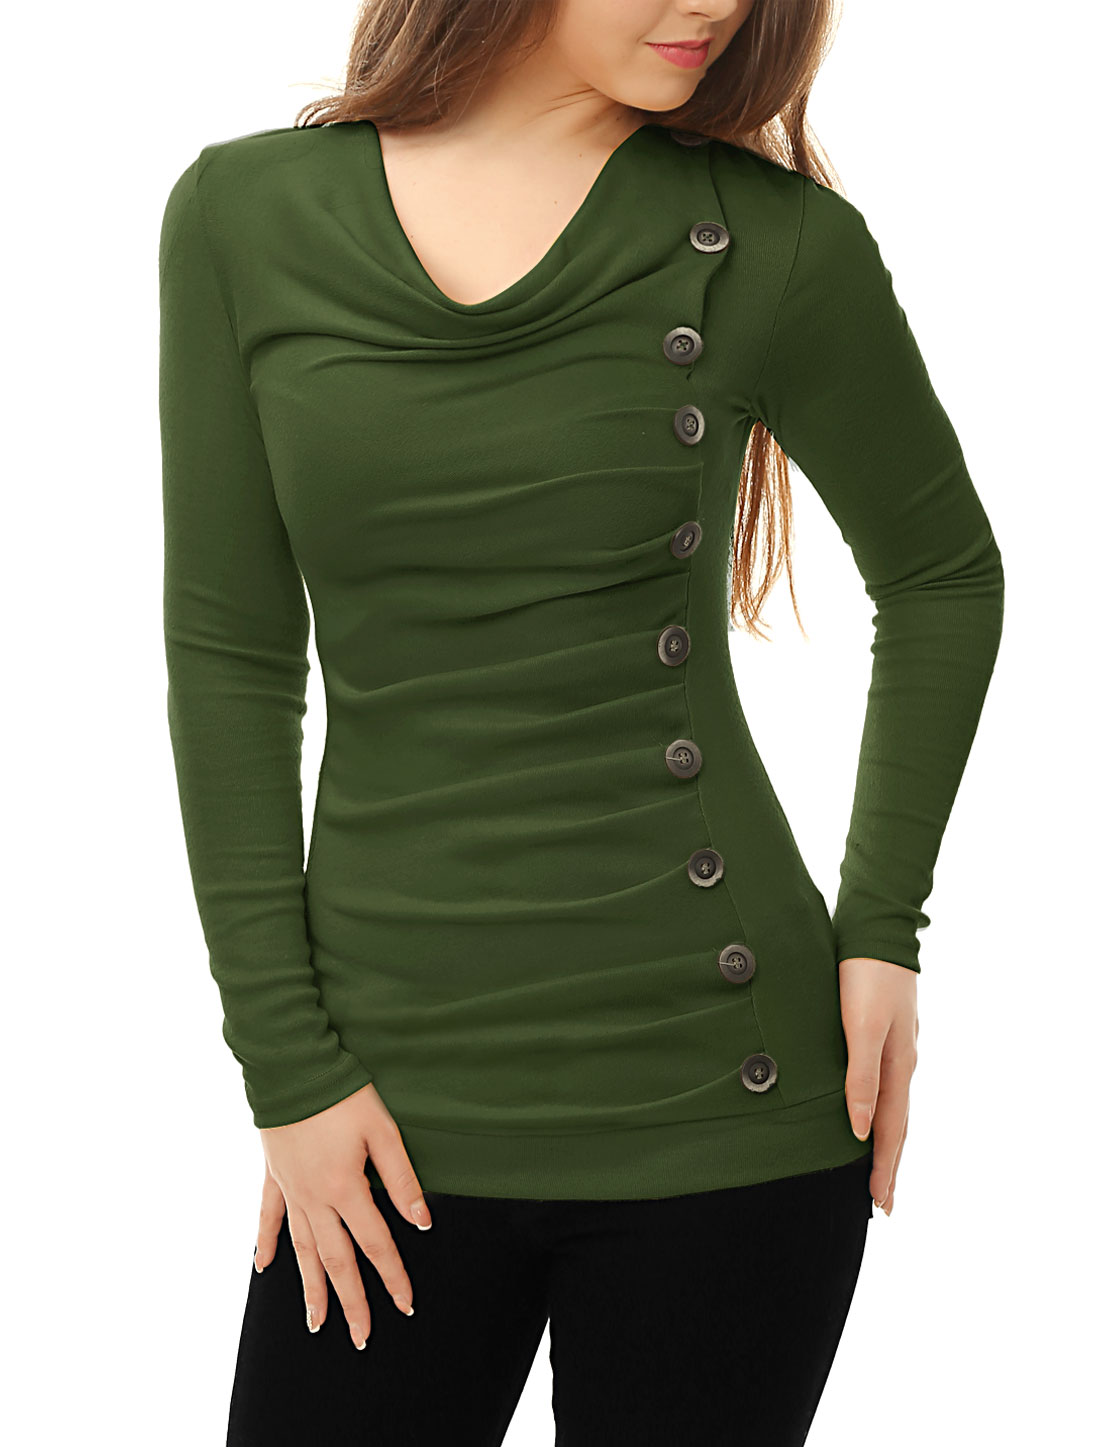 Women Cowl Neck Long Sleeves Buttons Decor Ruched Top Green S